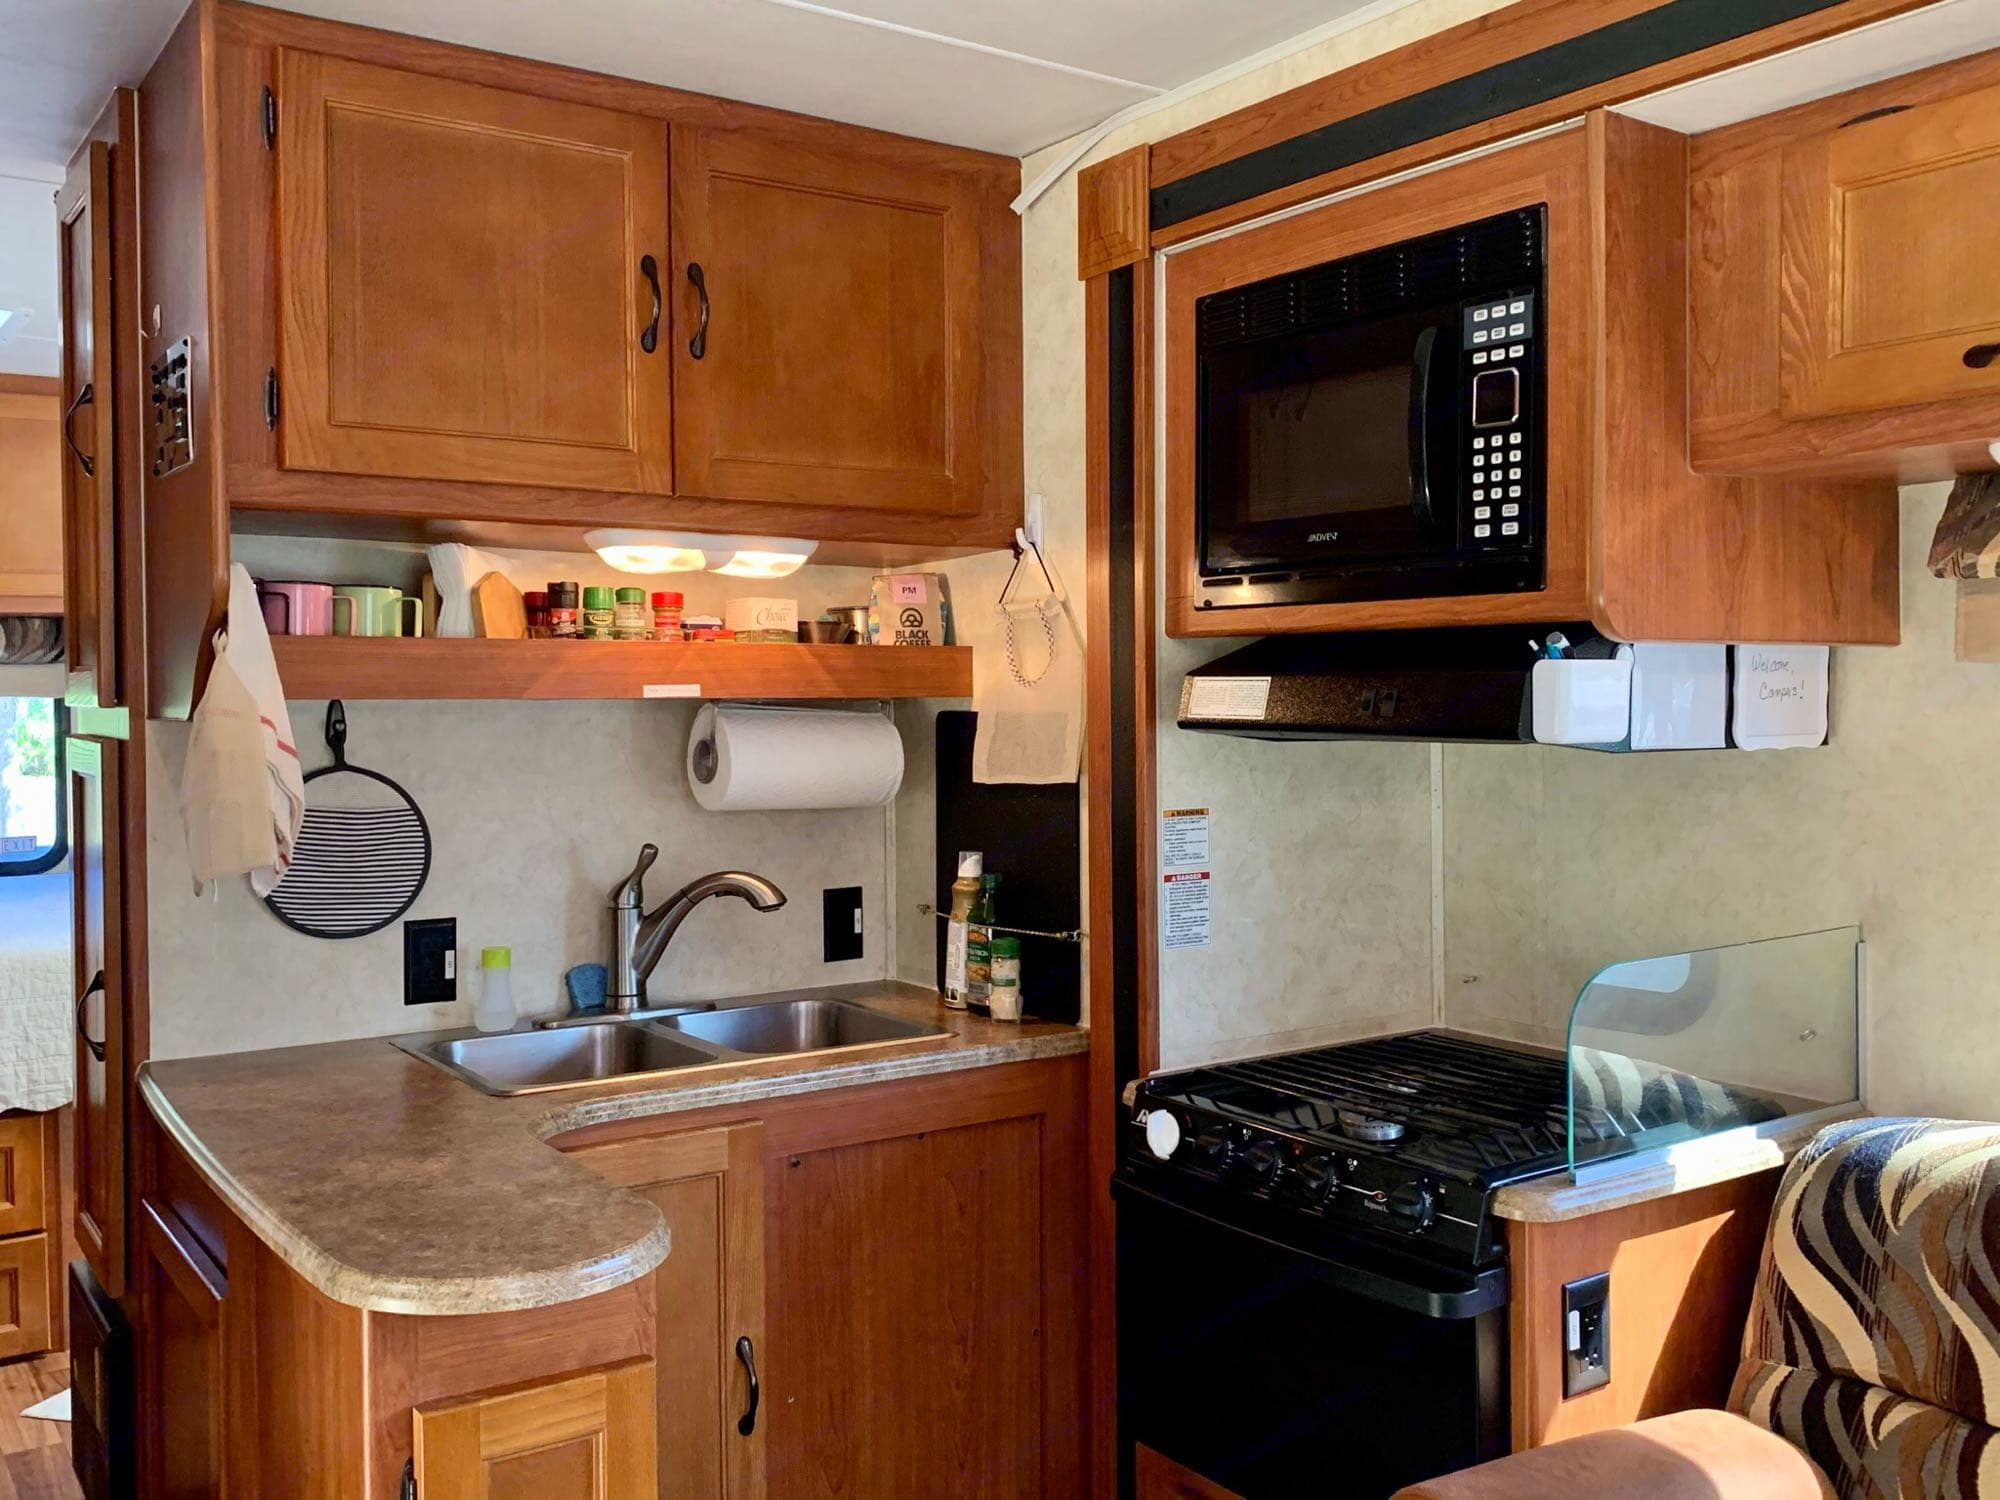 Spacious L-shaped kitchen with 3-burner stove, oven, microwave; nice counter space. Coachmen Freelander 2013